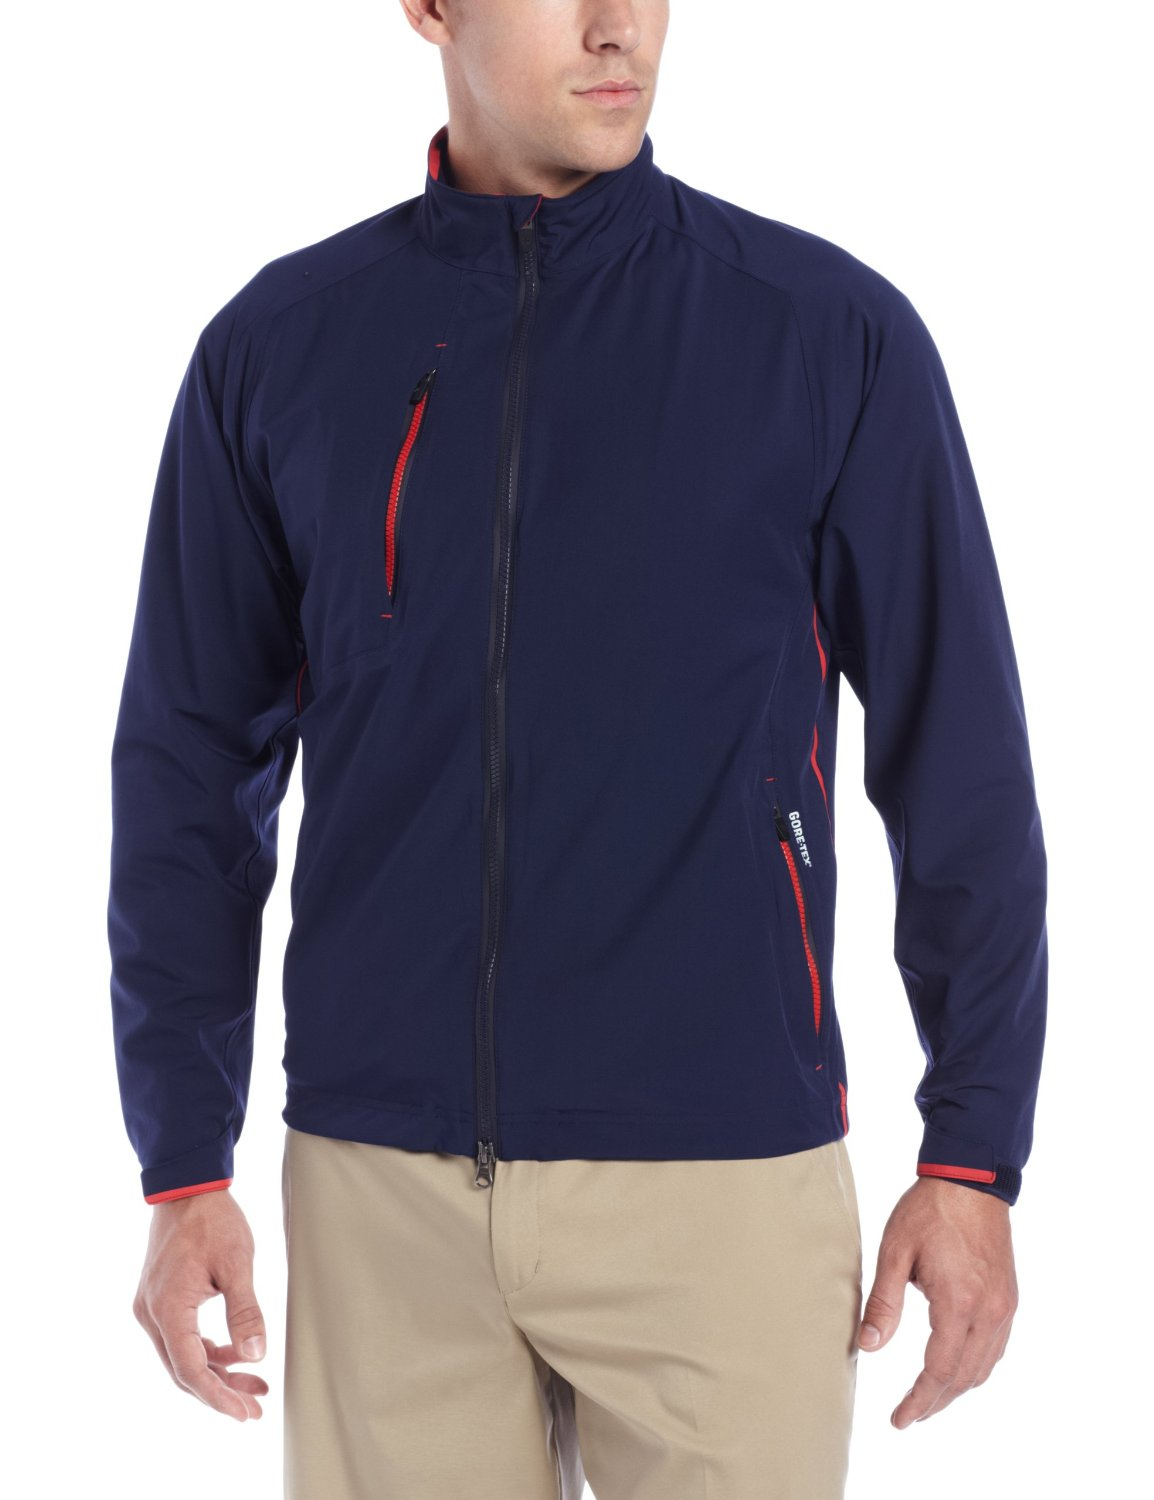 Mens Zero Restriction Waterproof Gore-Tex Stealth Golf Jackets